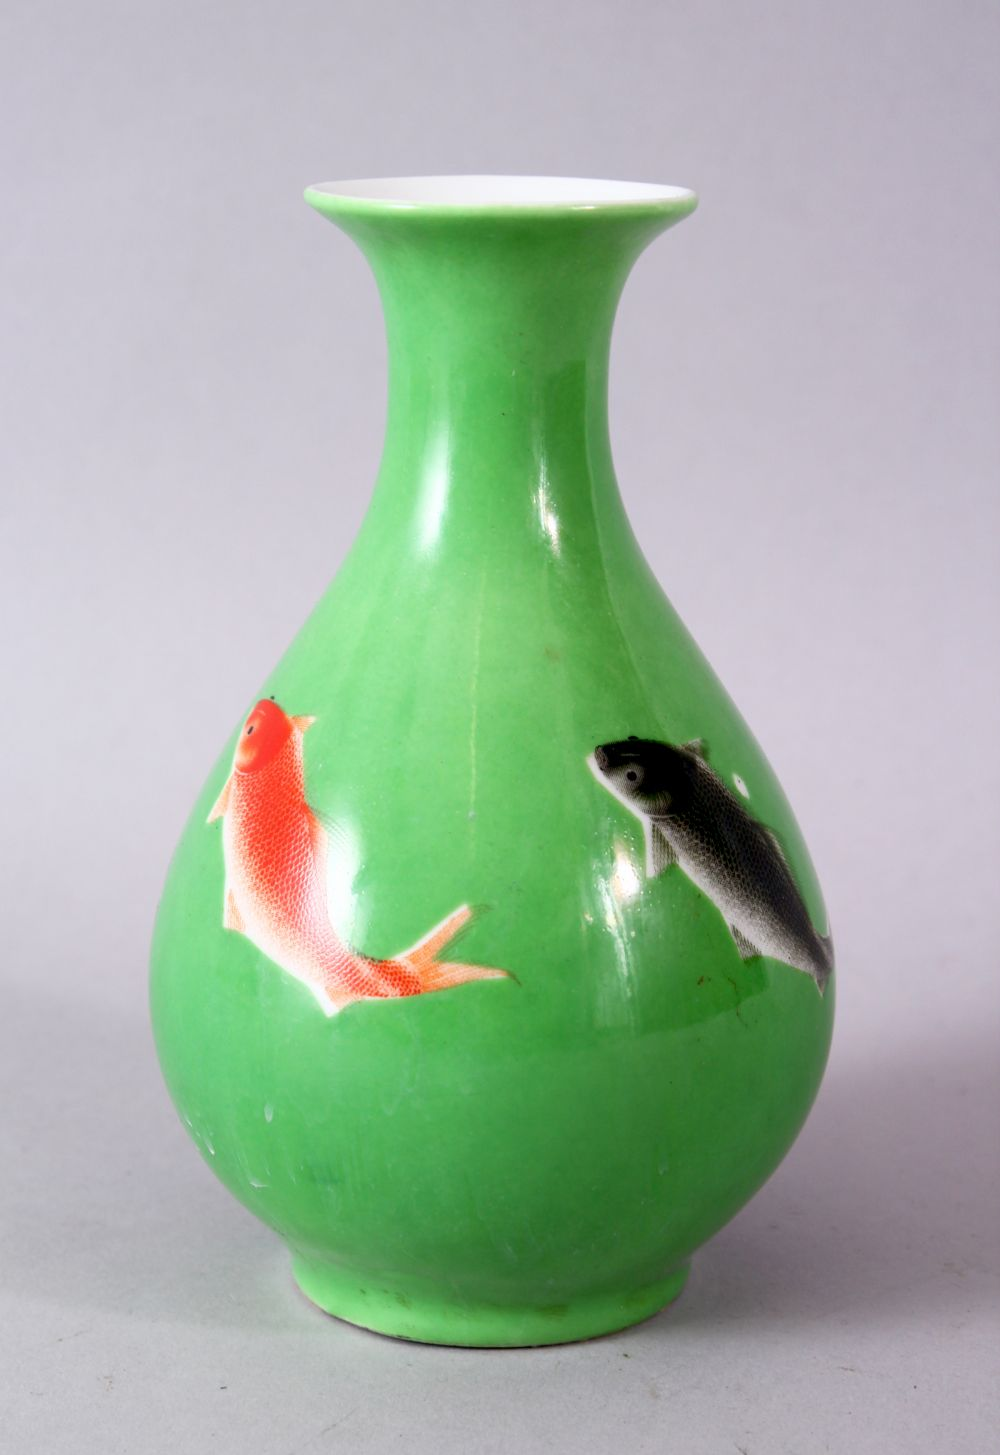 A CHINESE GREEN GLAZED VASE, painted with fish, mark in red, 15cm high.